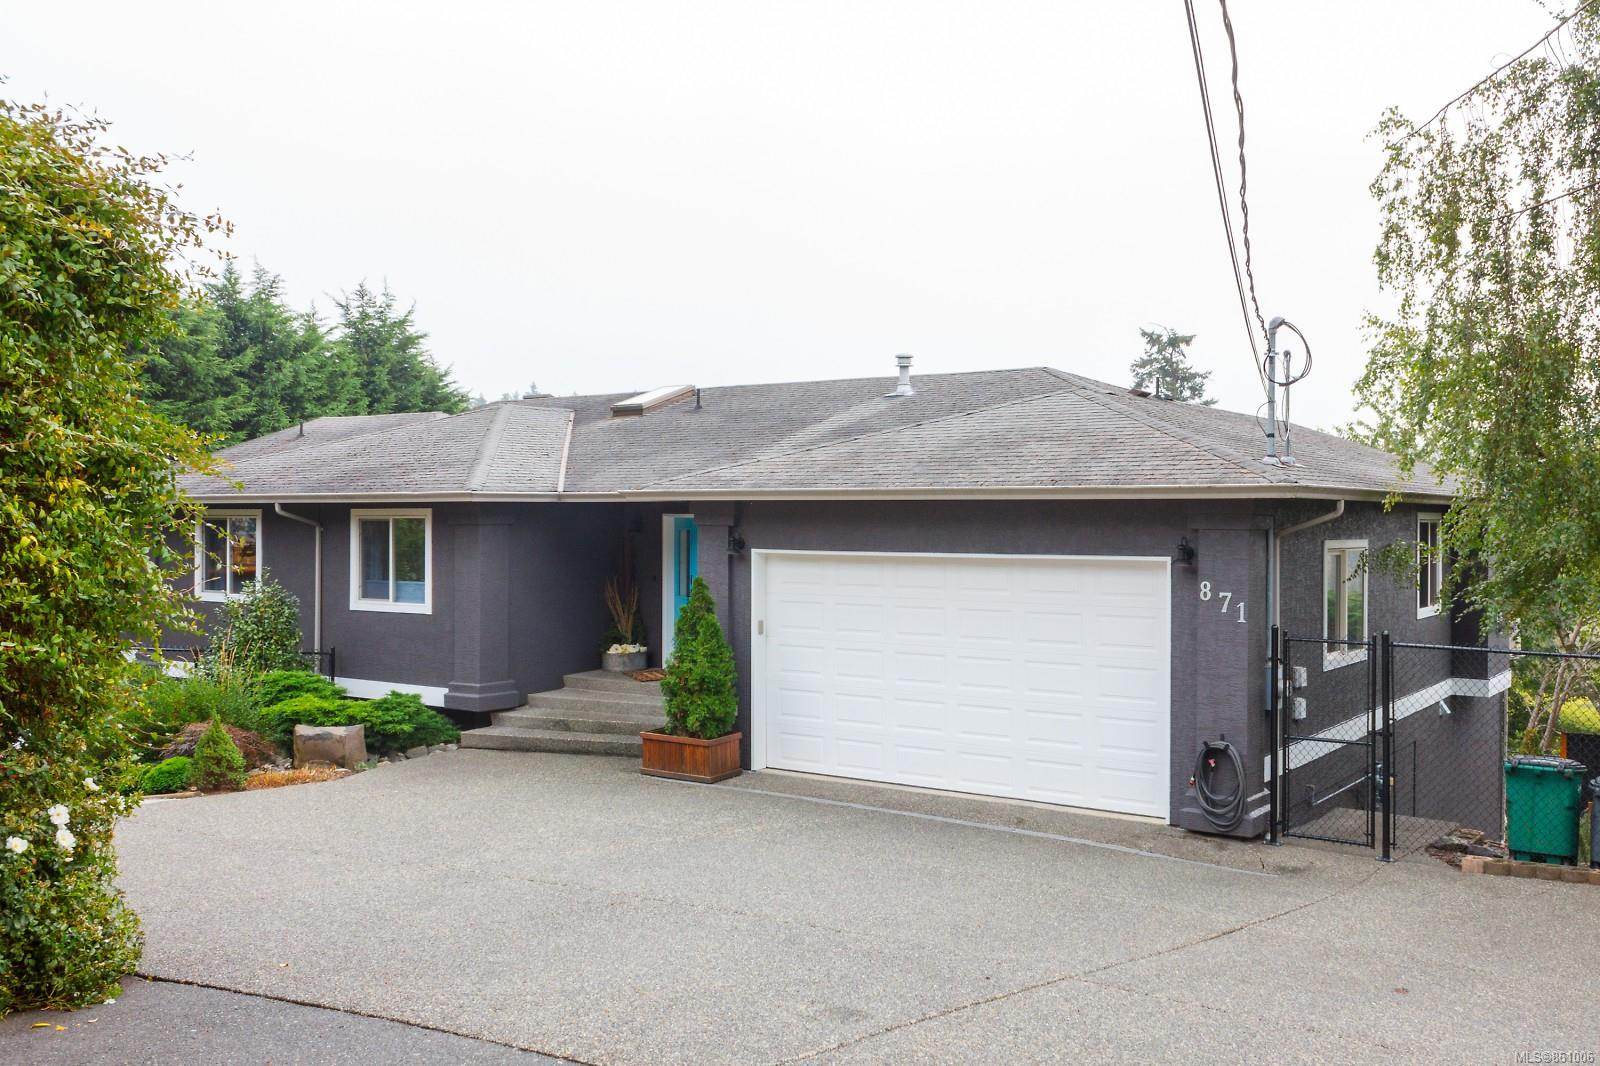 Beautiful, spacious home has been stylishly updated throughout, offering great flexibility with a versatile layout. The main floor offers complete living on one level, with master and ensuite, 2 more bedrooms and full bath, plus kitchen, dining, family and living rooms (each w/ gas fireplaces and connected with gorgeous white oak wide plank flooring). Expansive view over Rithet's Bog and Olympic Mountains. Stainless steel appliances, gas range, quartz counters, under-mount sink complete the remodelled kitchen. The lower level offers huge flexibility with an additional full living space directly connected to the main level, ideal for extended family, kids, your home office, or for use as a revenue suite. There is a gorgeous, independent and fully equipped 2-bedroom suite. This is a very private, fully fenced 1/3 acre lot with a separate dog/kid play zone with artificial turf, and 2 sheds. Excellent school district, easy walk to shopping, buses and more.